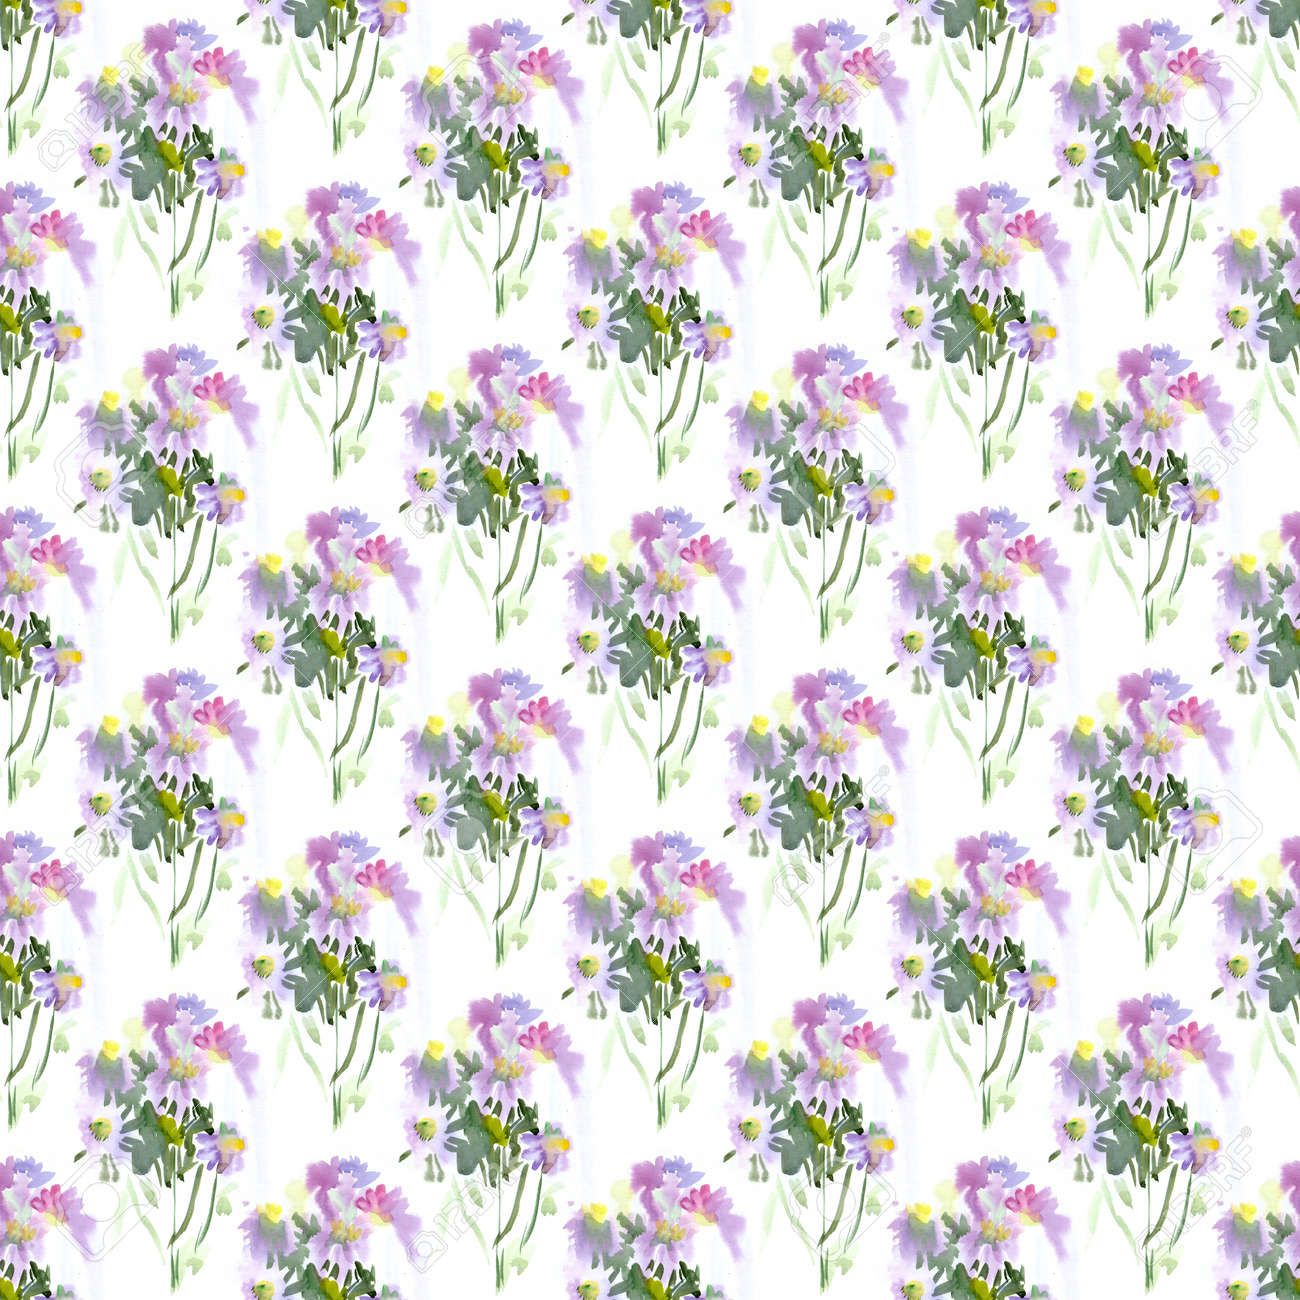 Seamless Patterns With Violet Watercolor Spring Flowers Lizenzfreie